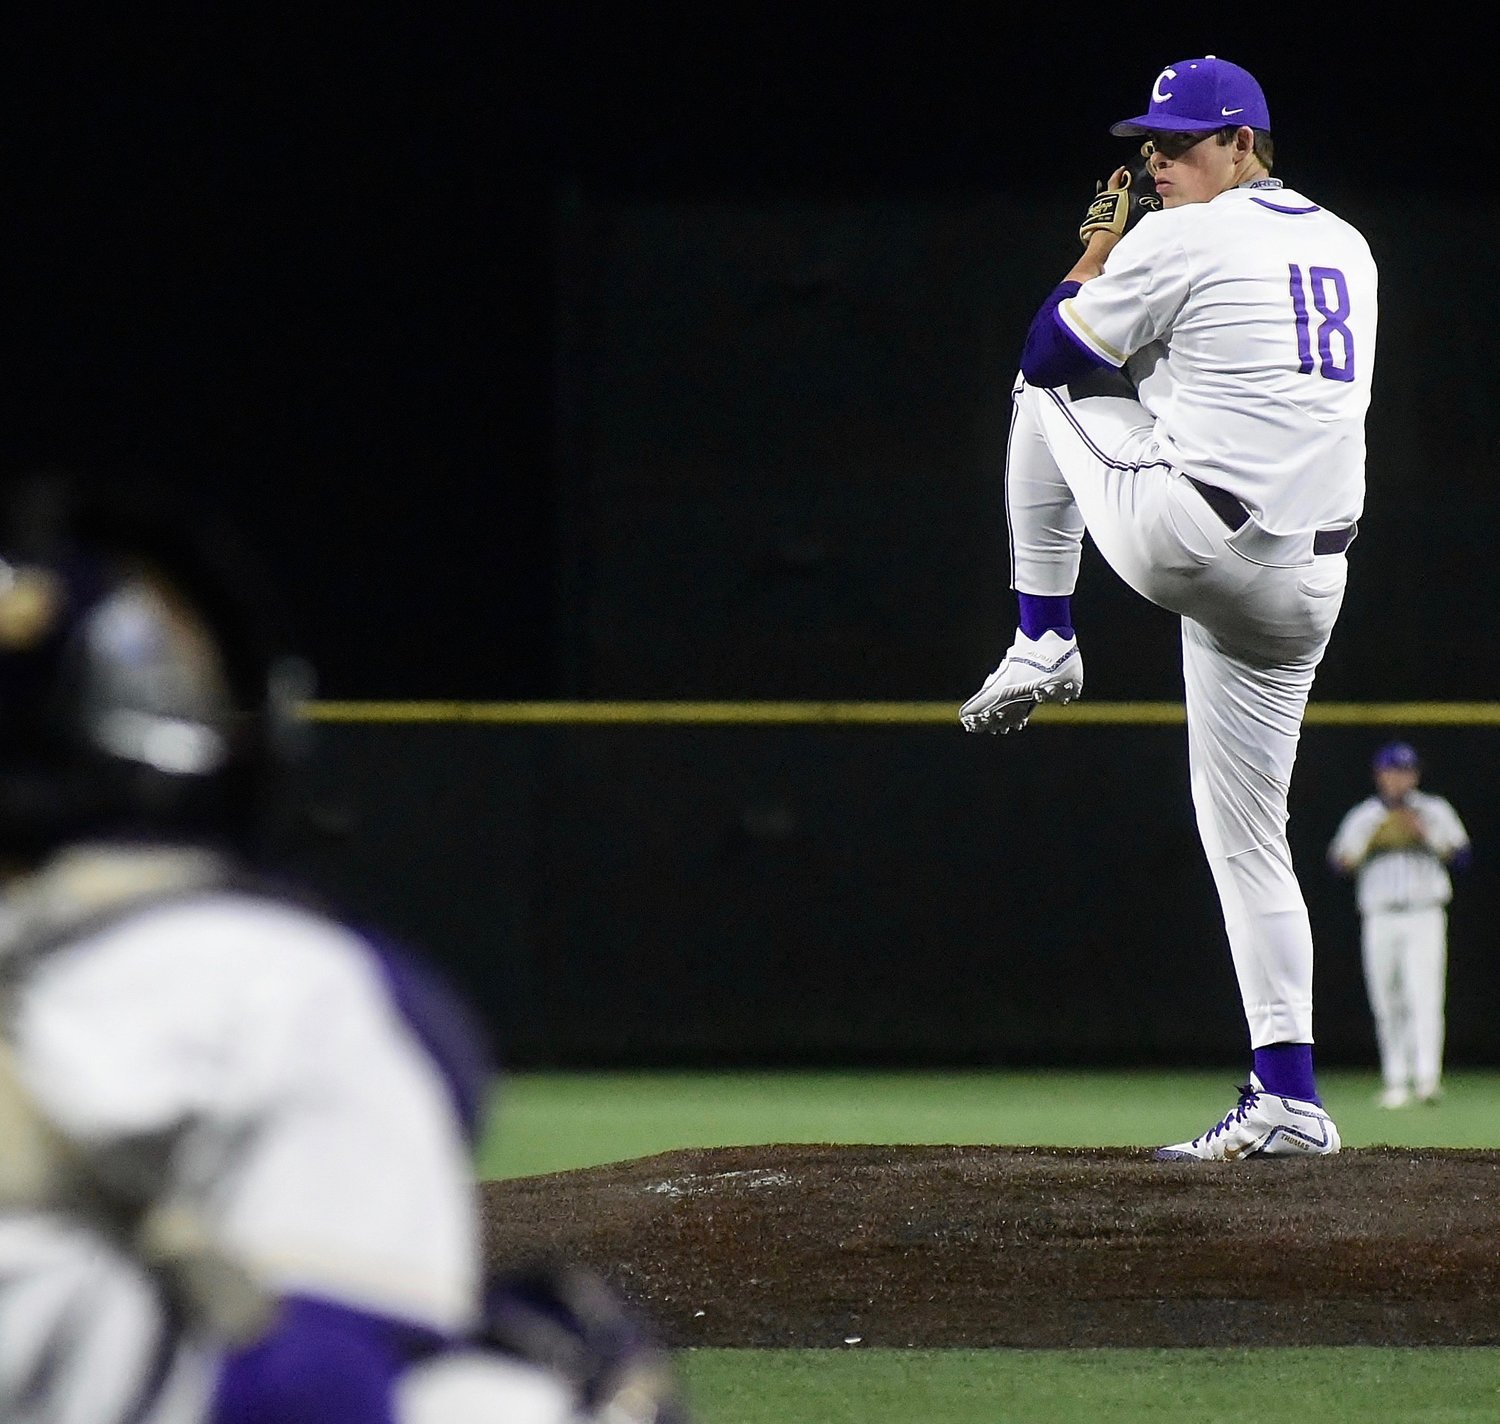 Cartersville senior right-hander Mason Barnett was named the Daily Tribune News pitcher of the year.